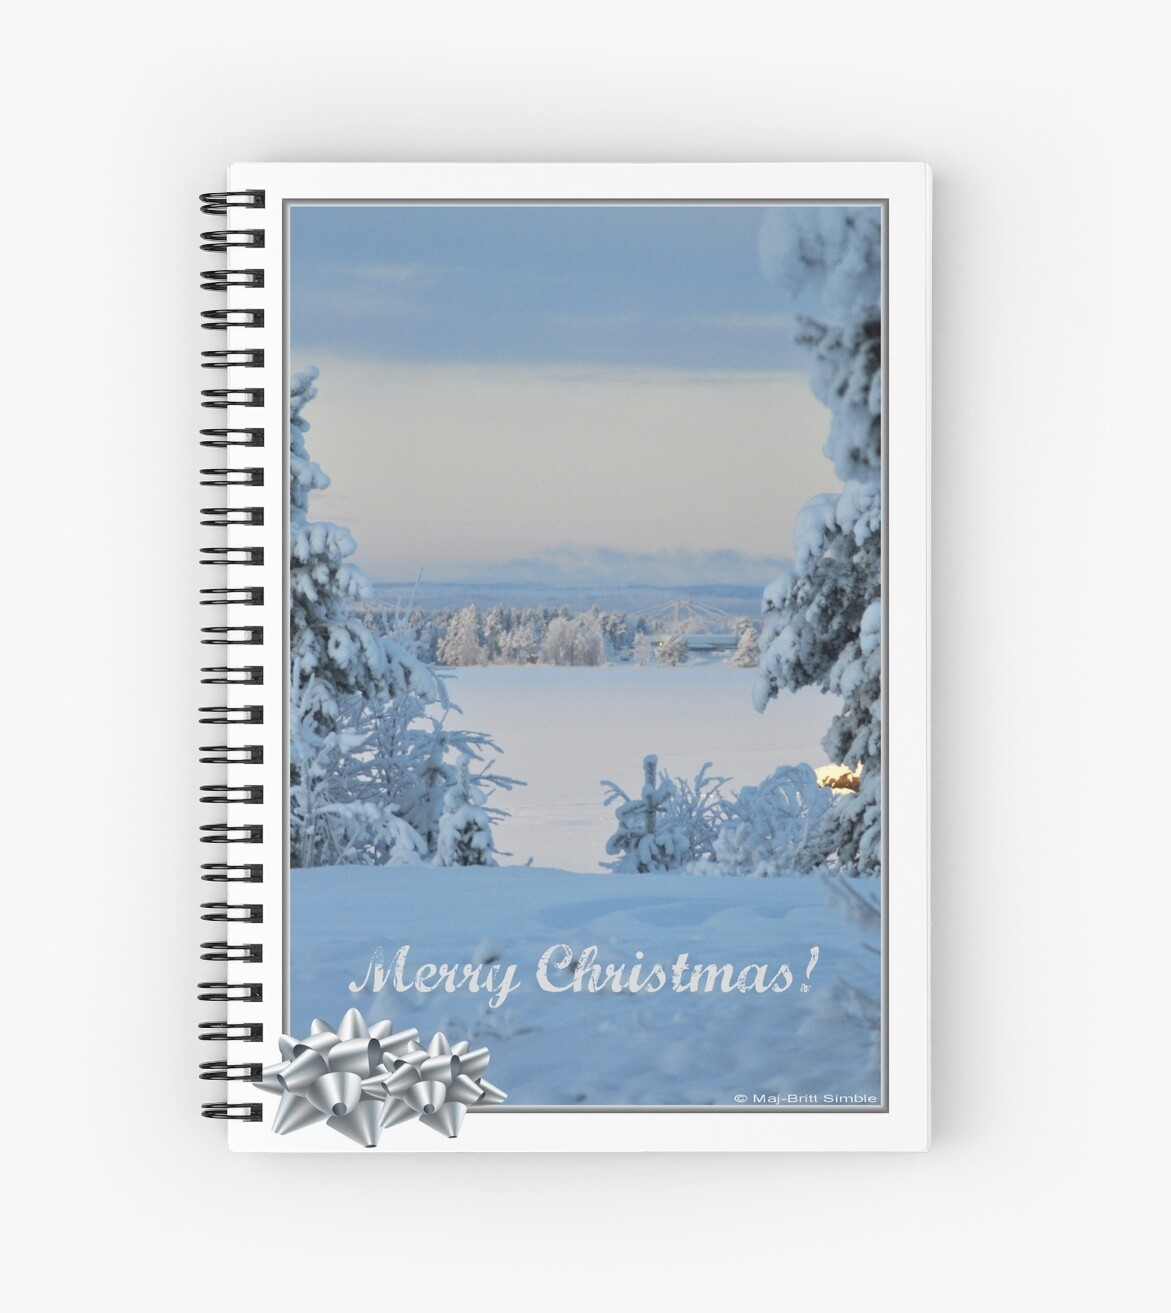 Merry Christmas - card7  :-) by Maj-Britt Simble